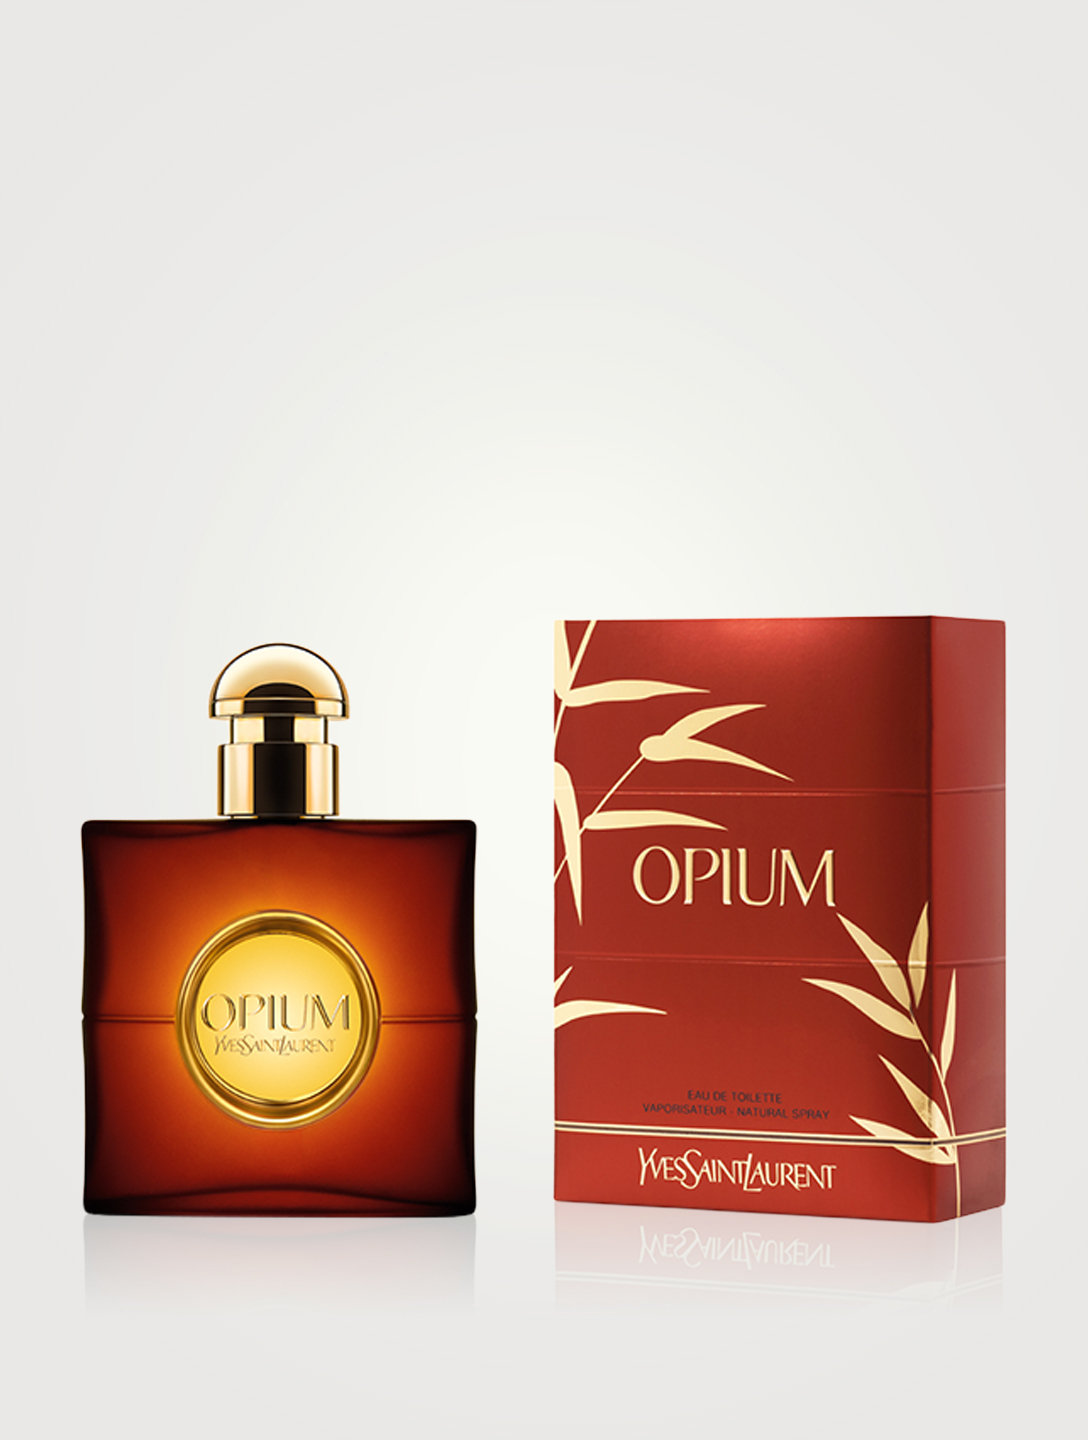 YVES SAINT LAURENT Opium Eau De Toilette Beauty